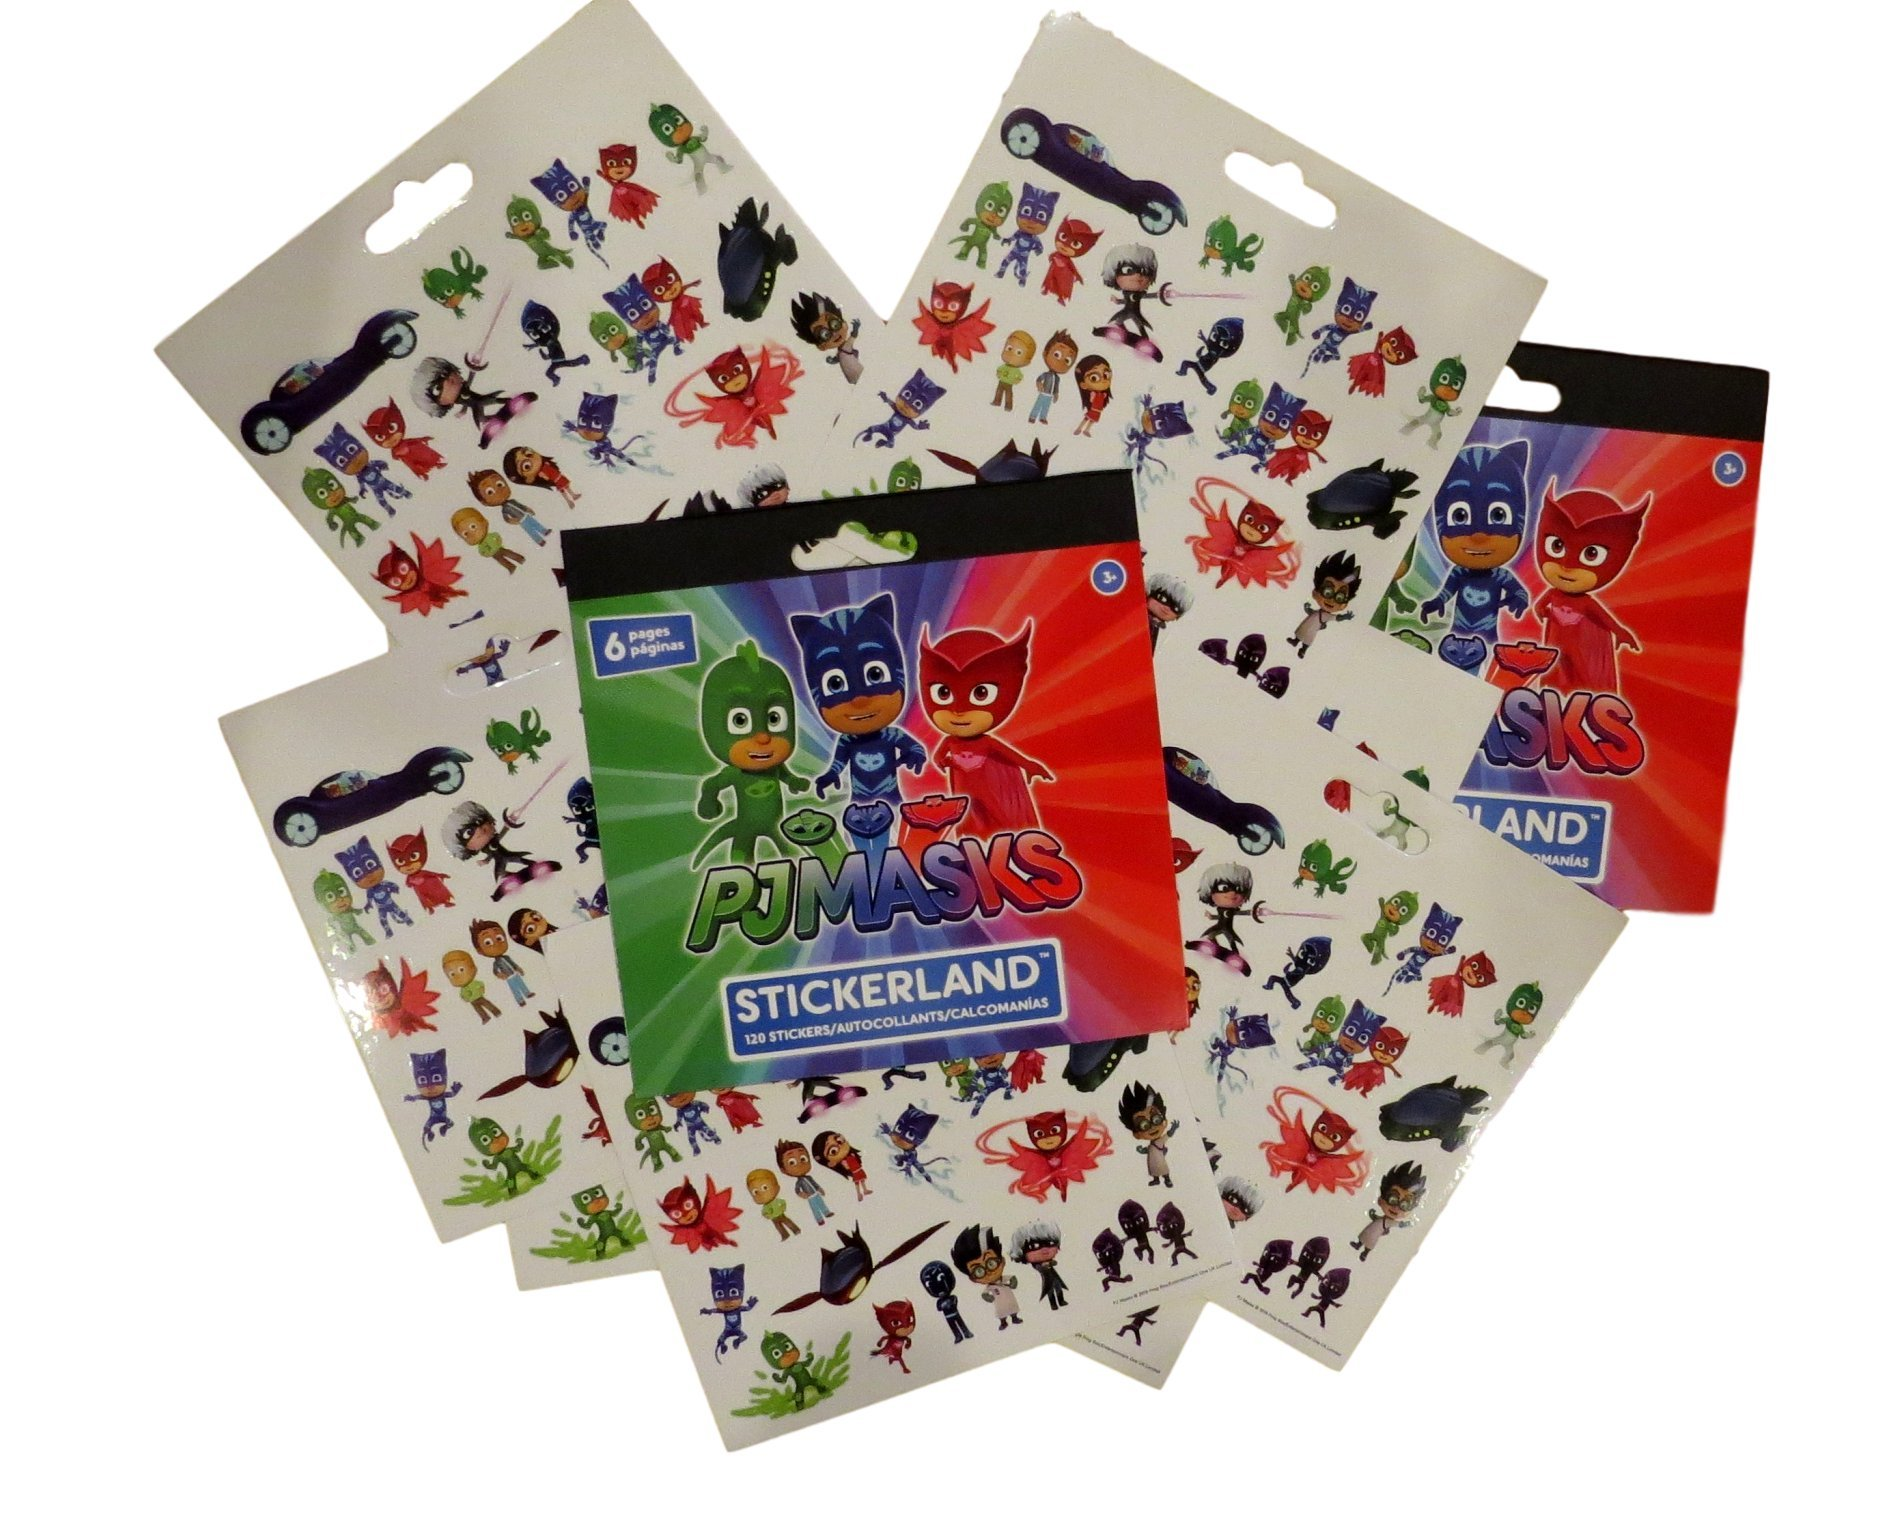 PJ Masks Stickers Party Favors - Bundle of 12 Sheets plus 2 Jumbo Specialty Comic Pop